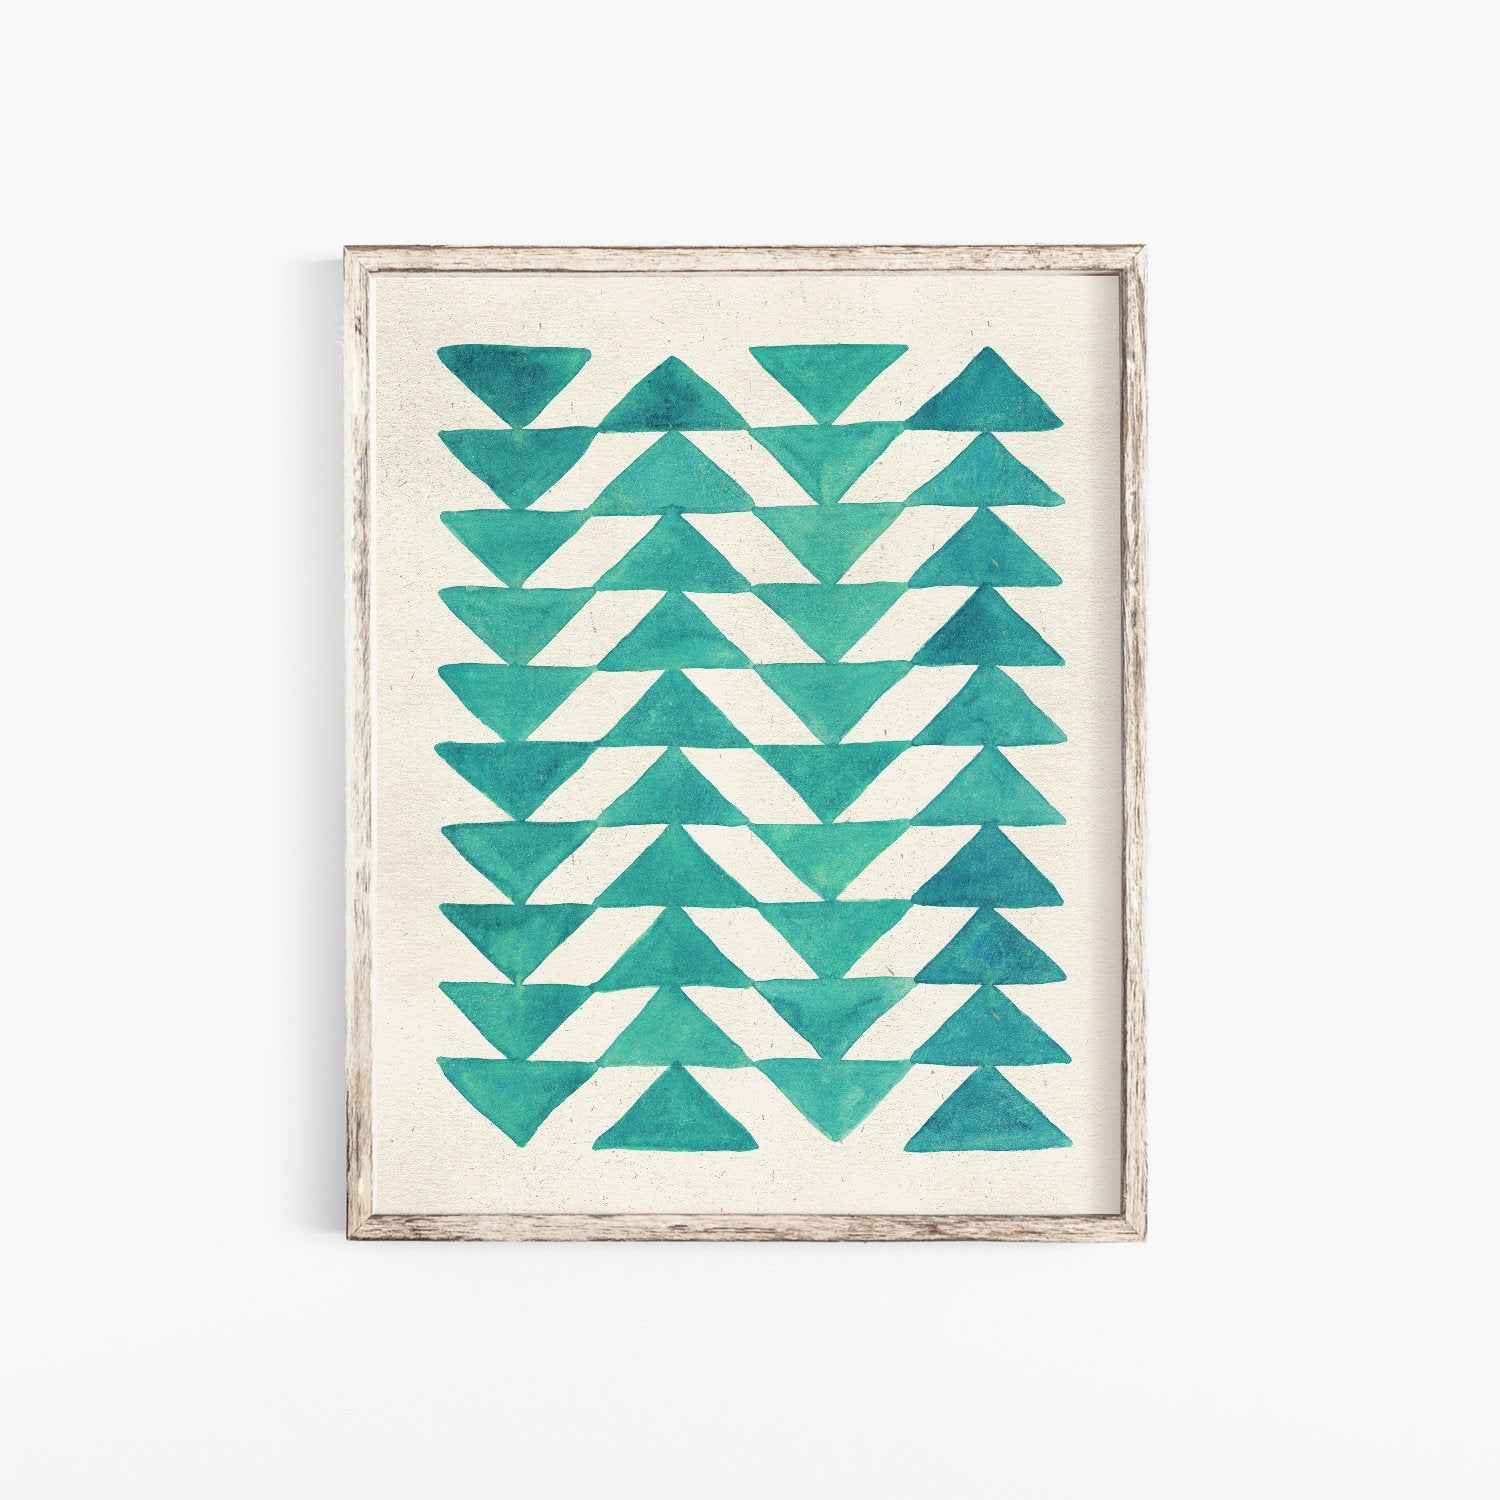 Triangle Arrow Quilt Wall Art Print - Turquoise | Geometric Wall Art | Turquoise Wall Art | Watercolor Art Print | Minimalist Art | 8x10